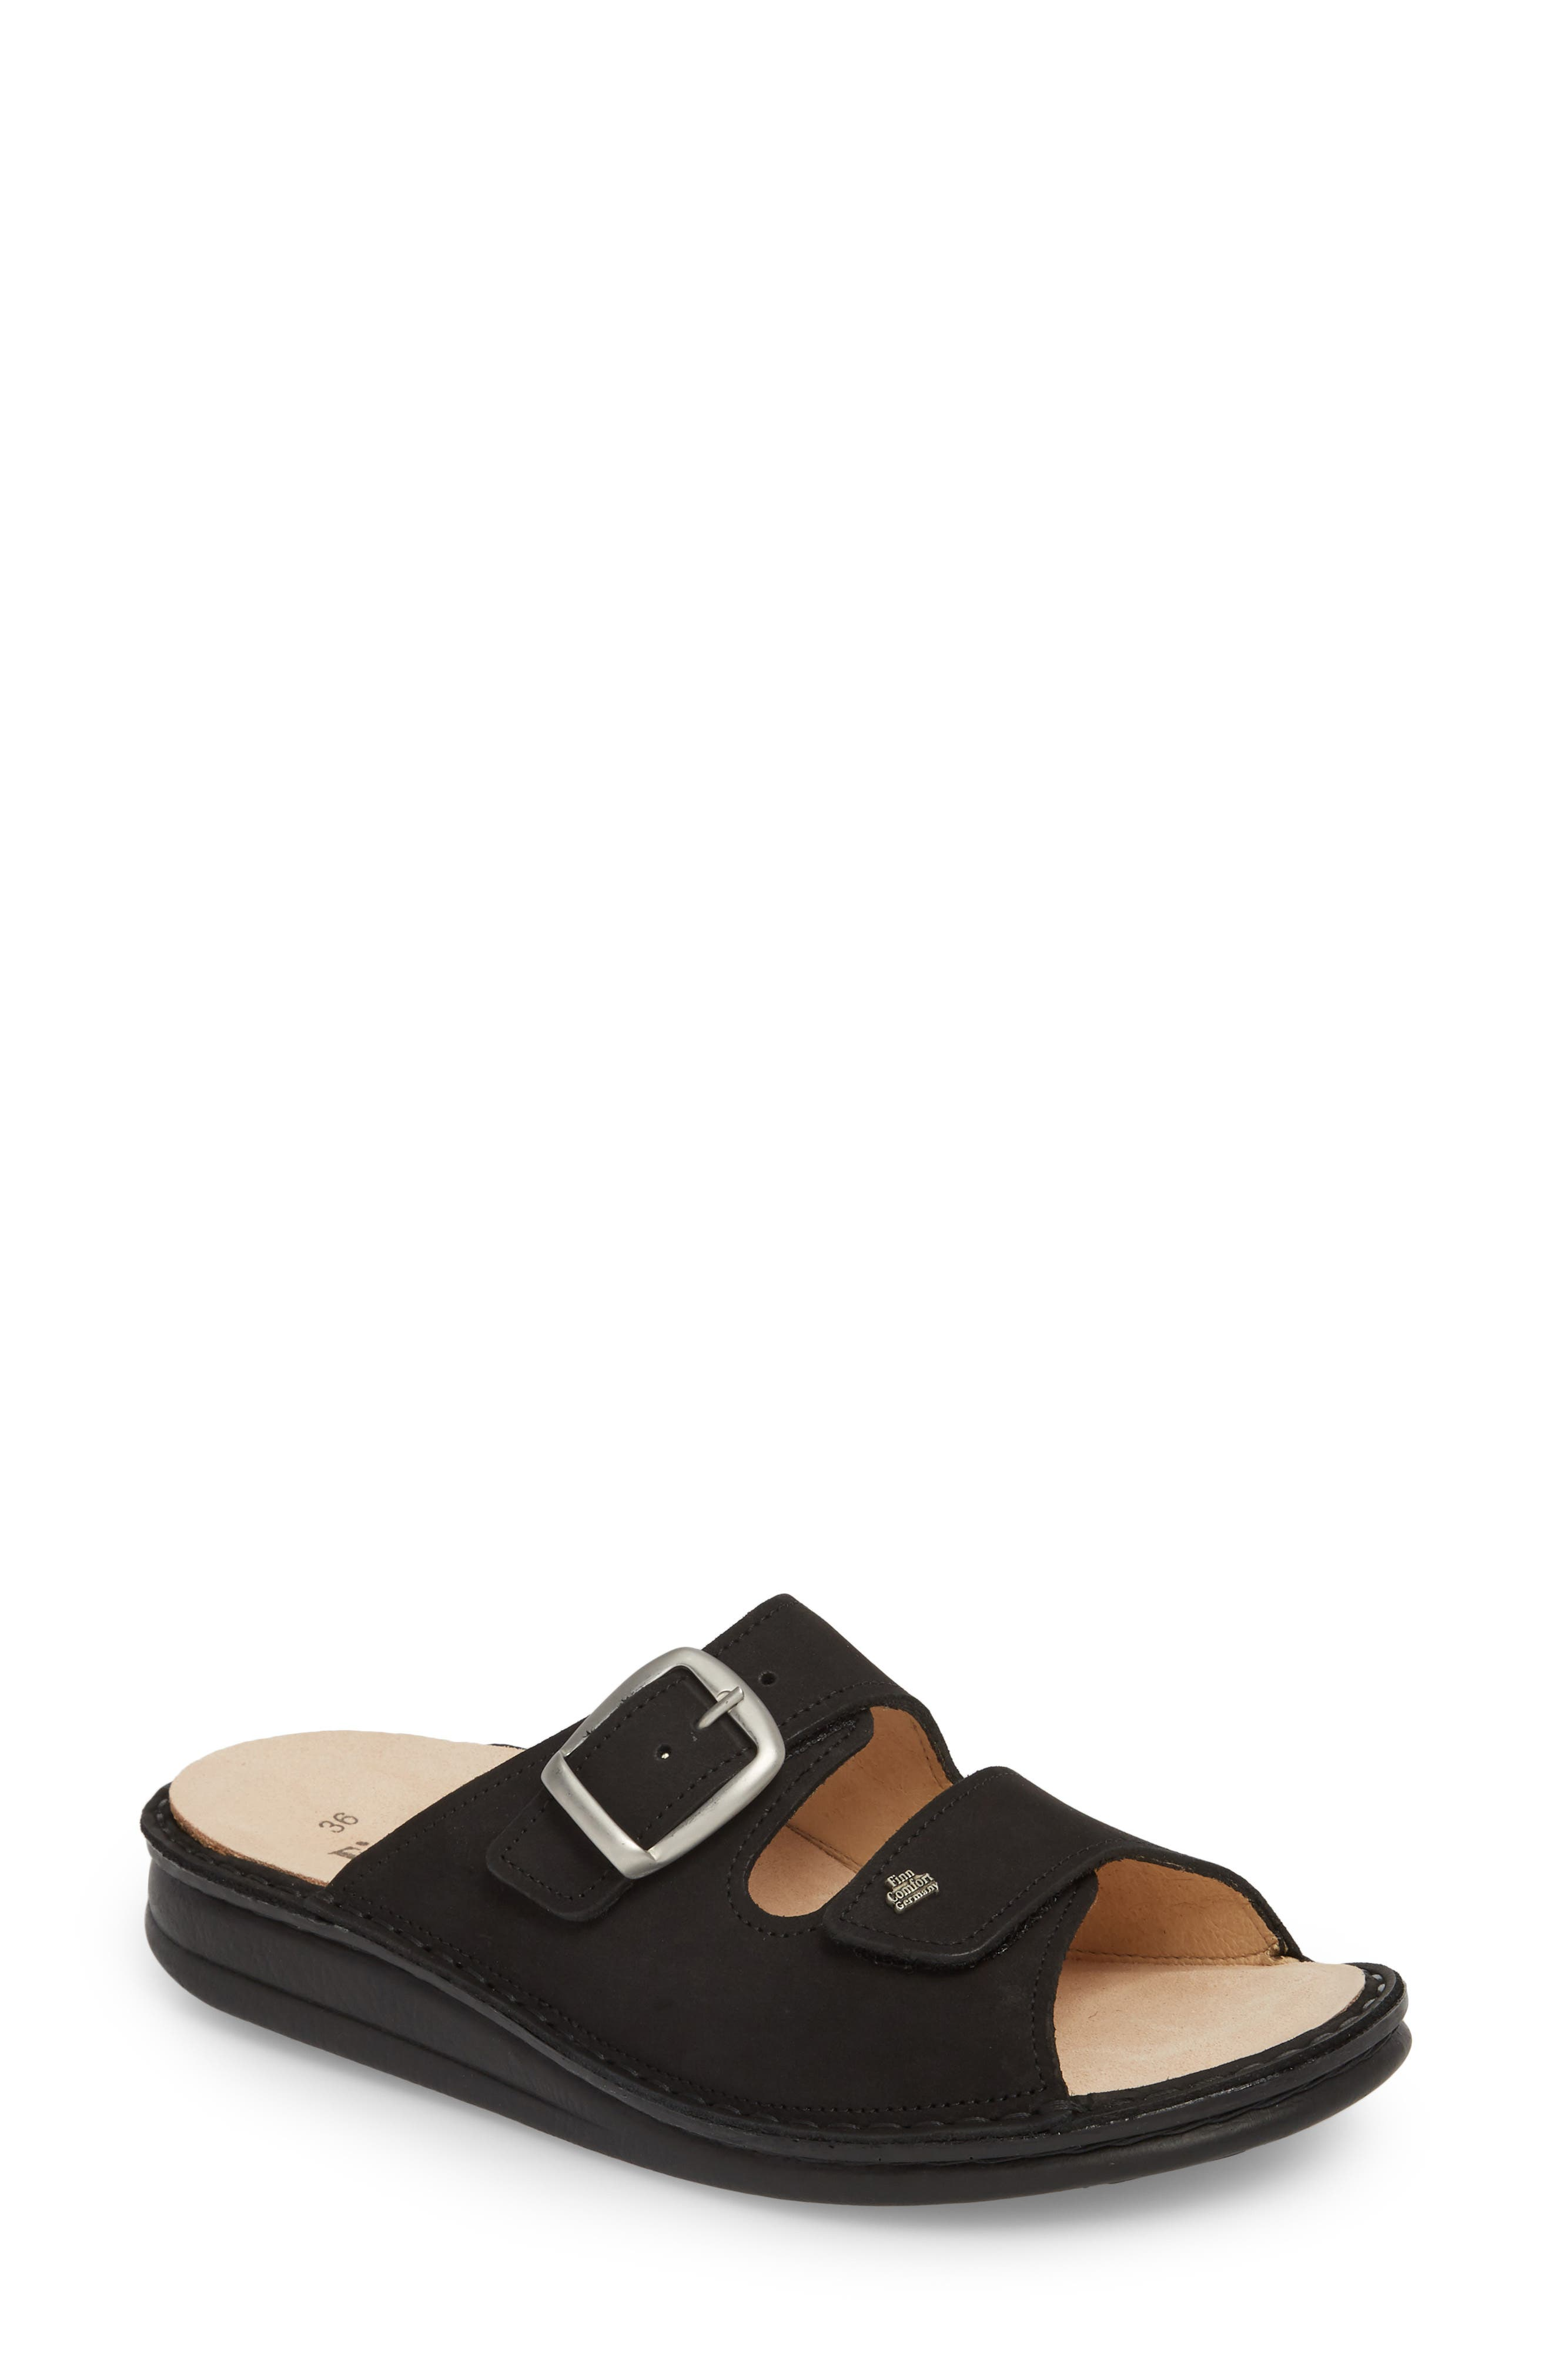 Harper Slide Sandal,                             Main thumbnail 1, color,                             BLACK LEATHER